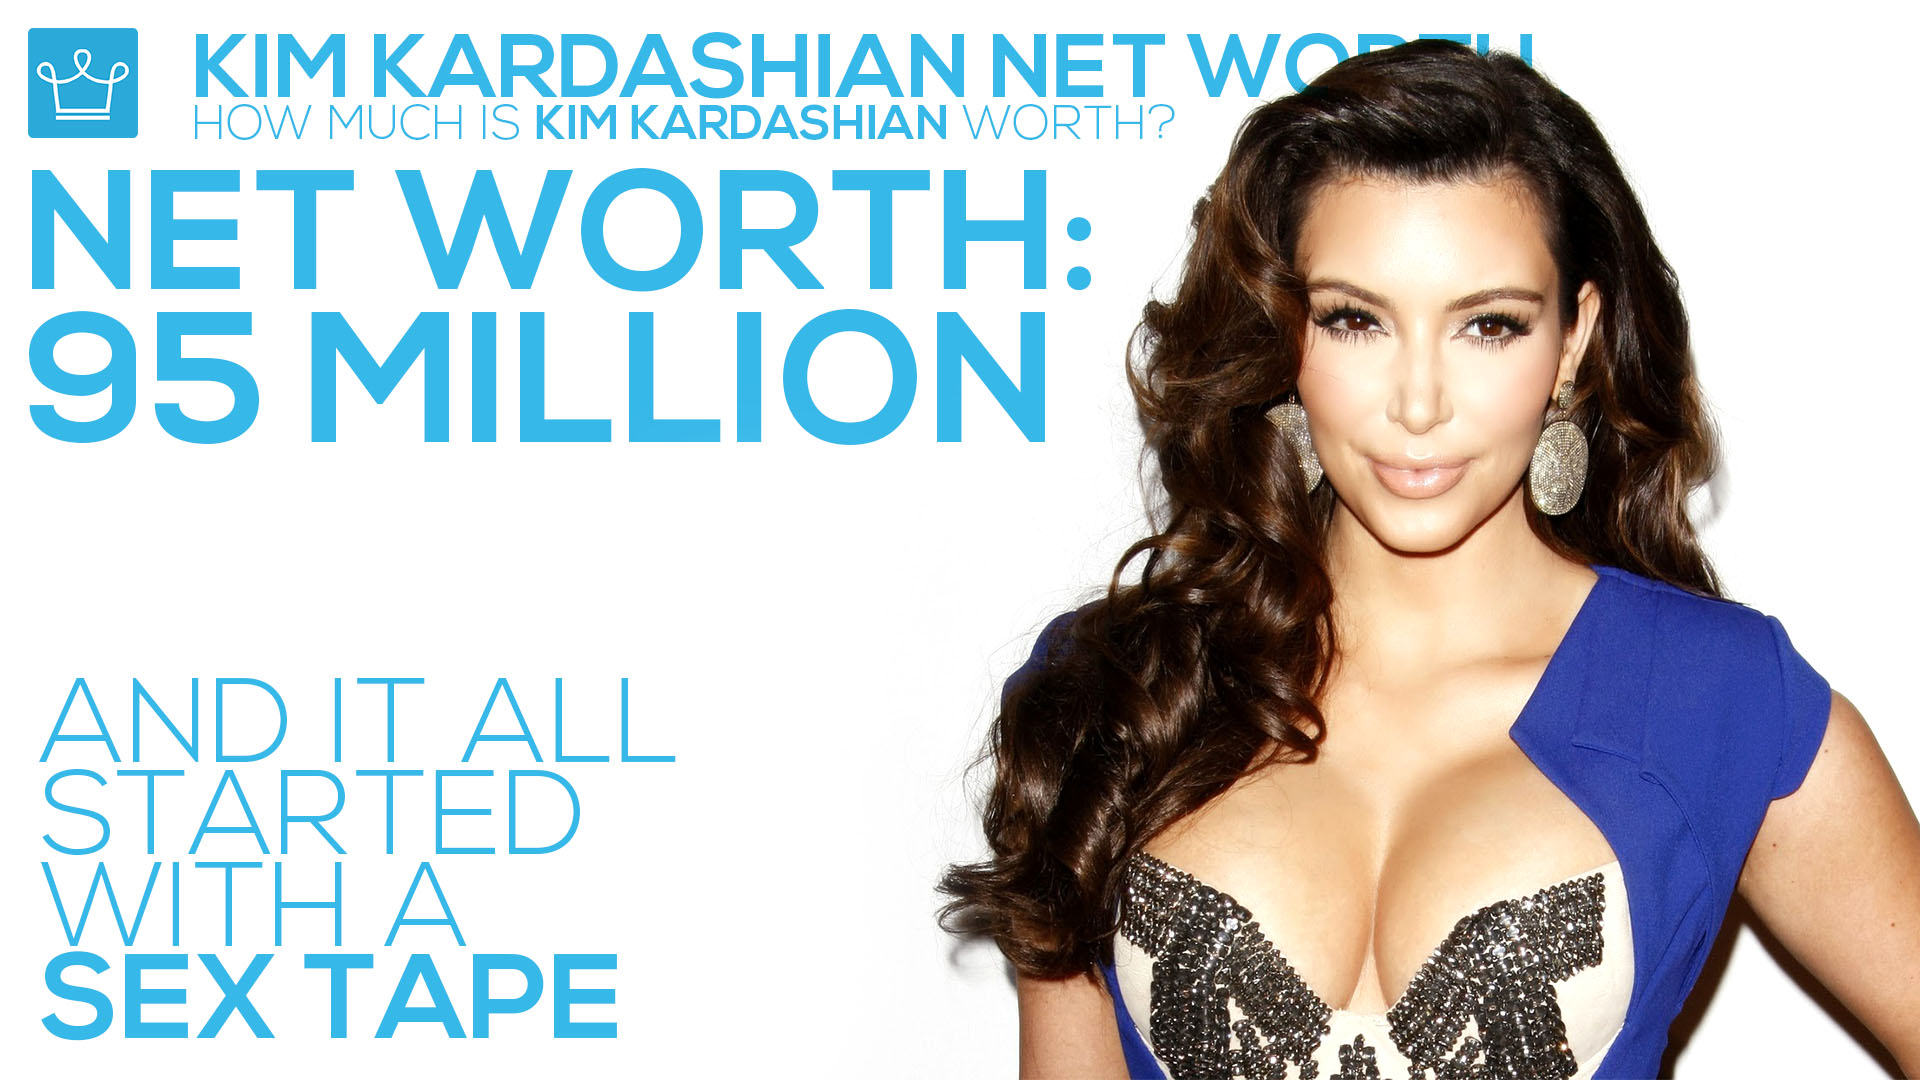 kim kardashian net worth how rich is money wealth house fortune how much is kim kardashian worth